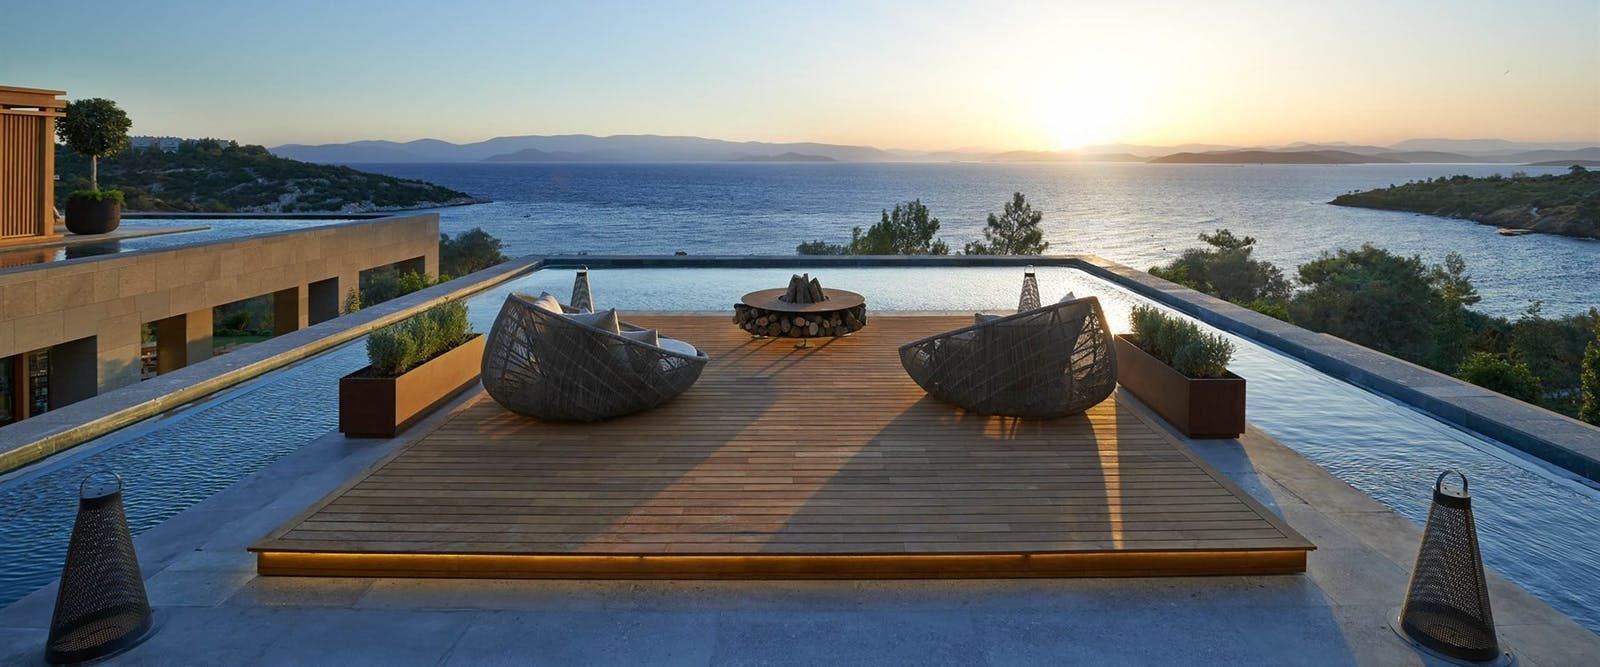 Arrival Deck at Mandarin Oriental Bodrum, Turkey